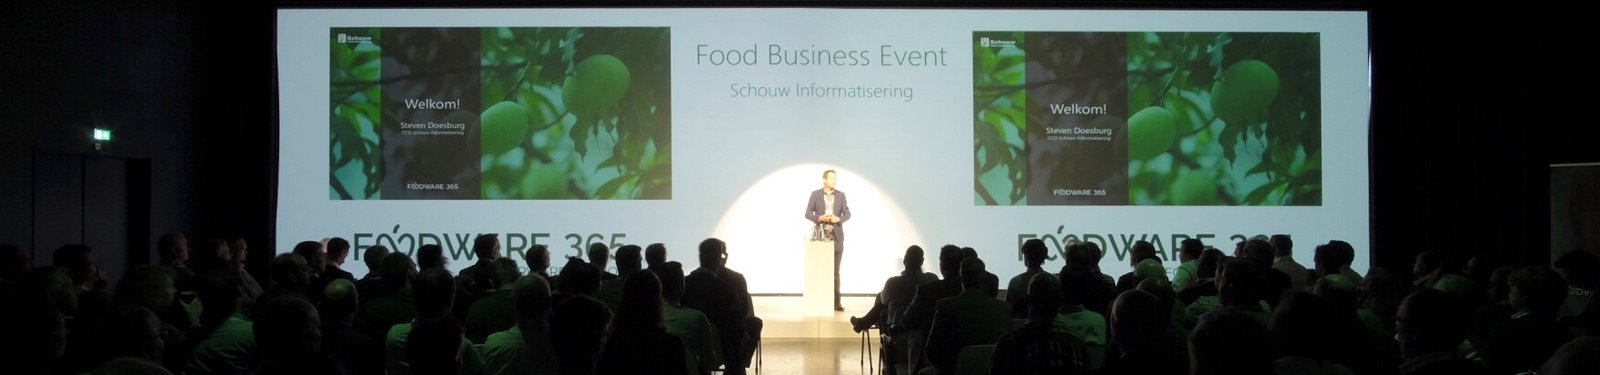 food-business-event.jpg